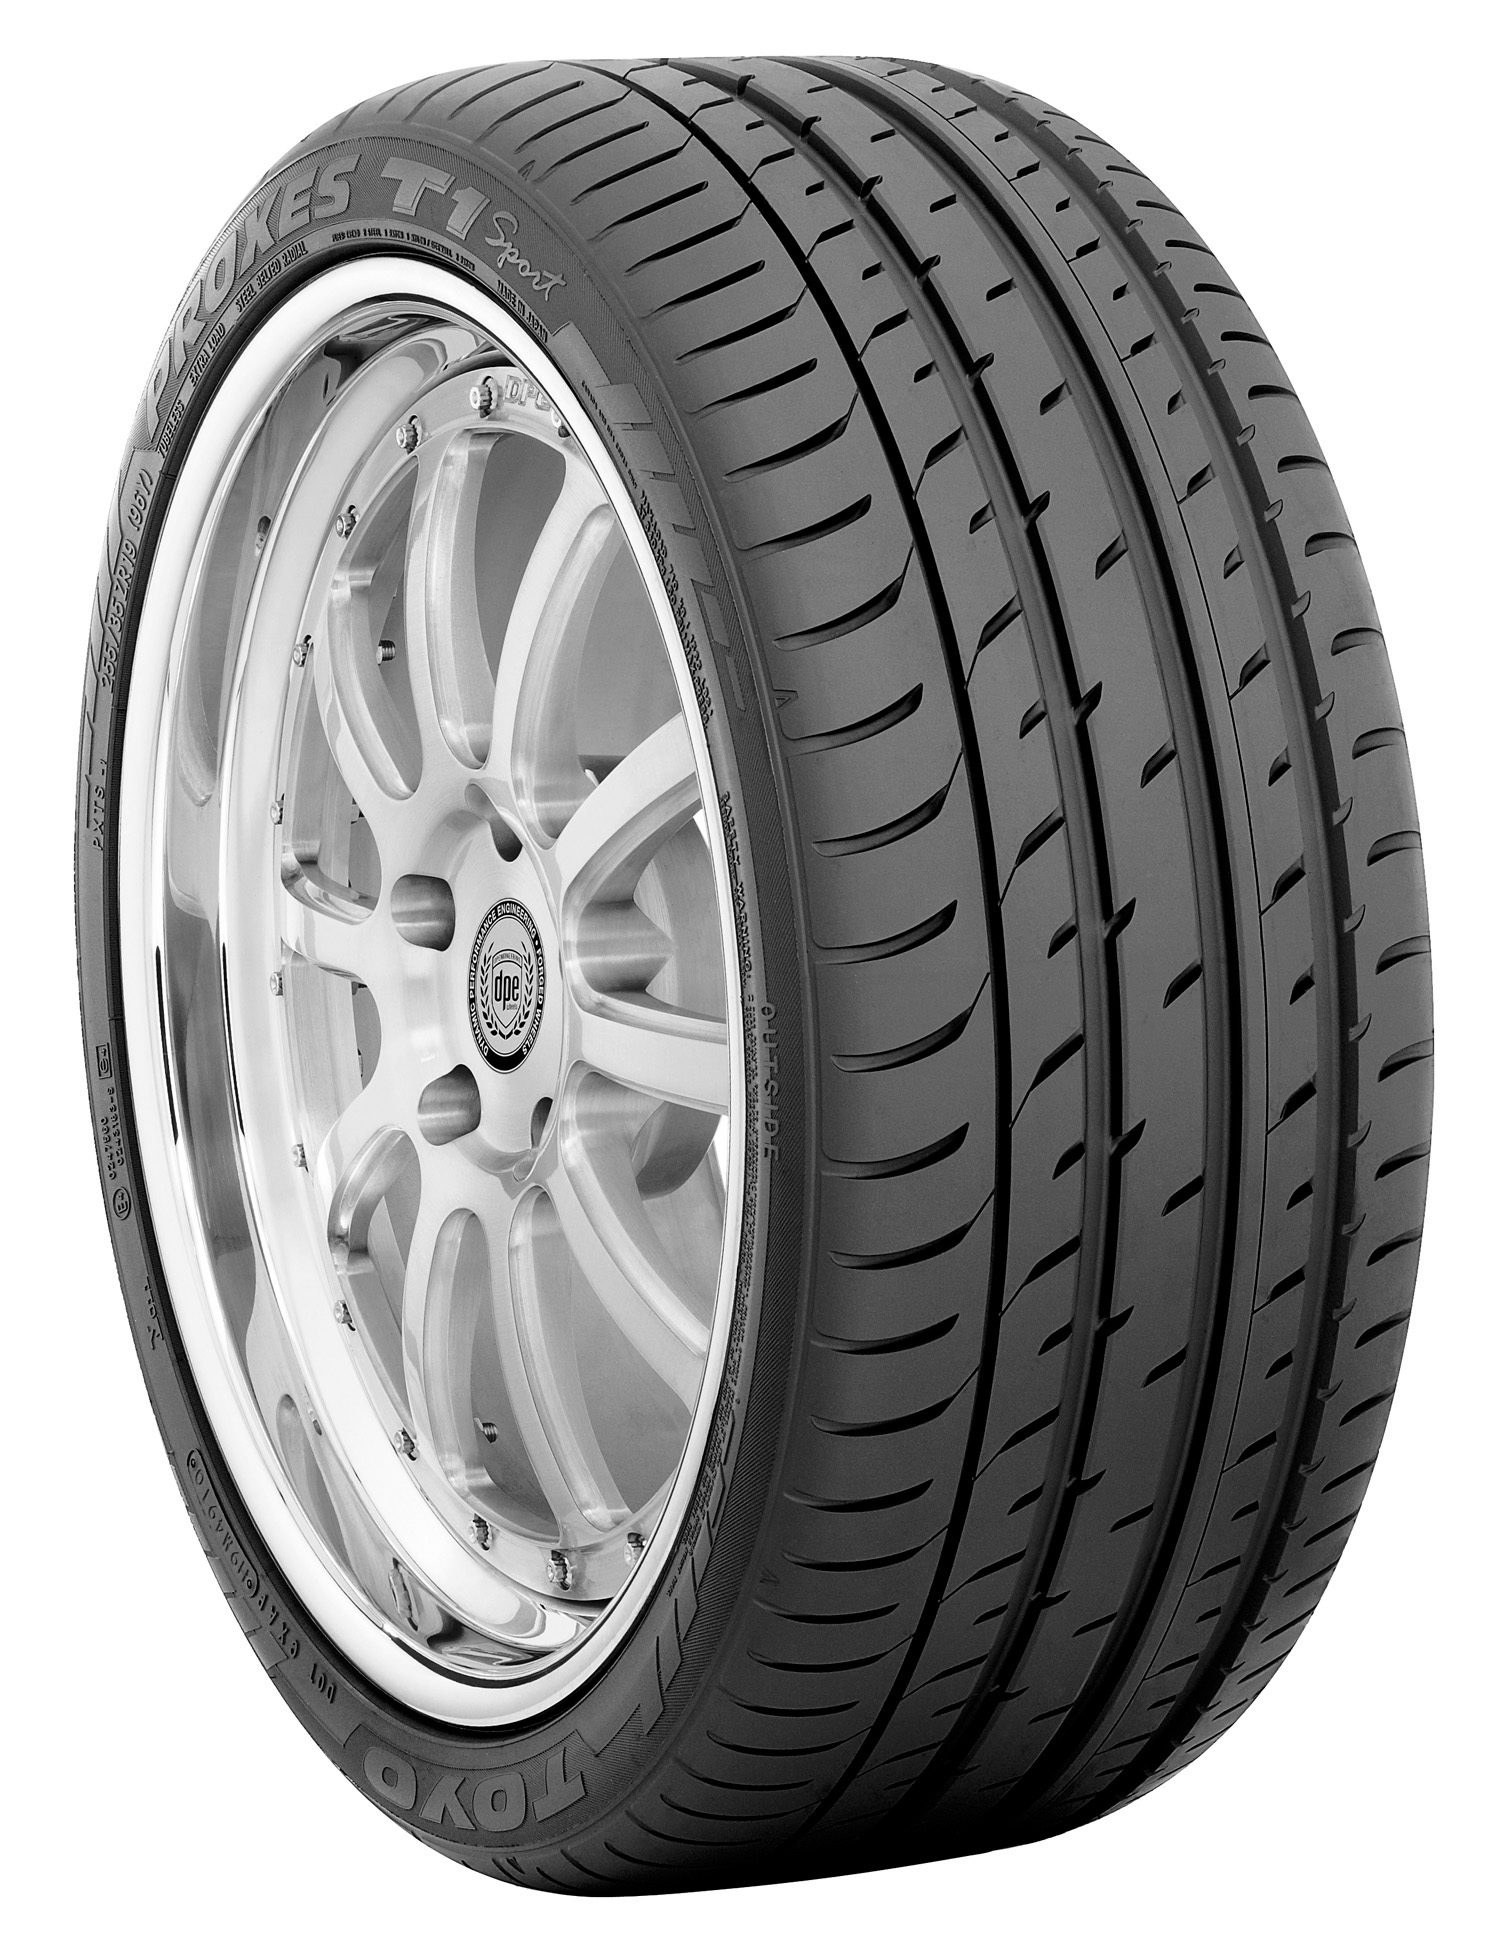 TOYO Proxes T1Sport Ultra High Performance 1